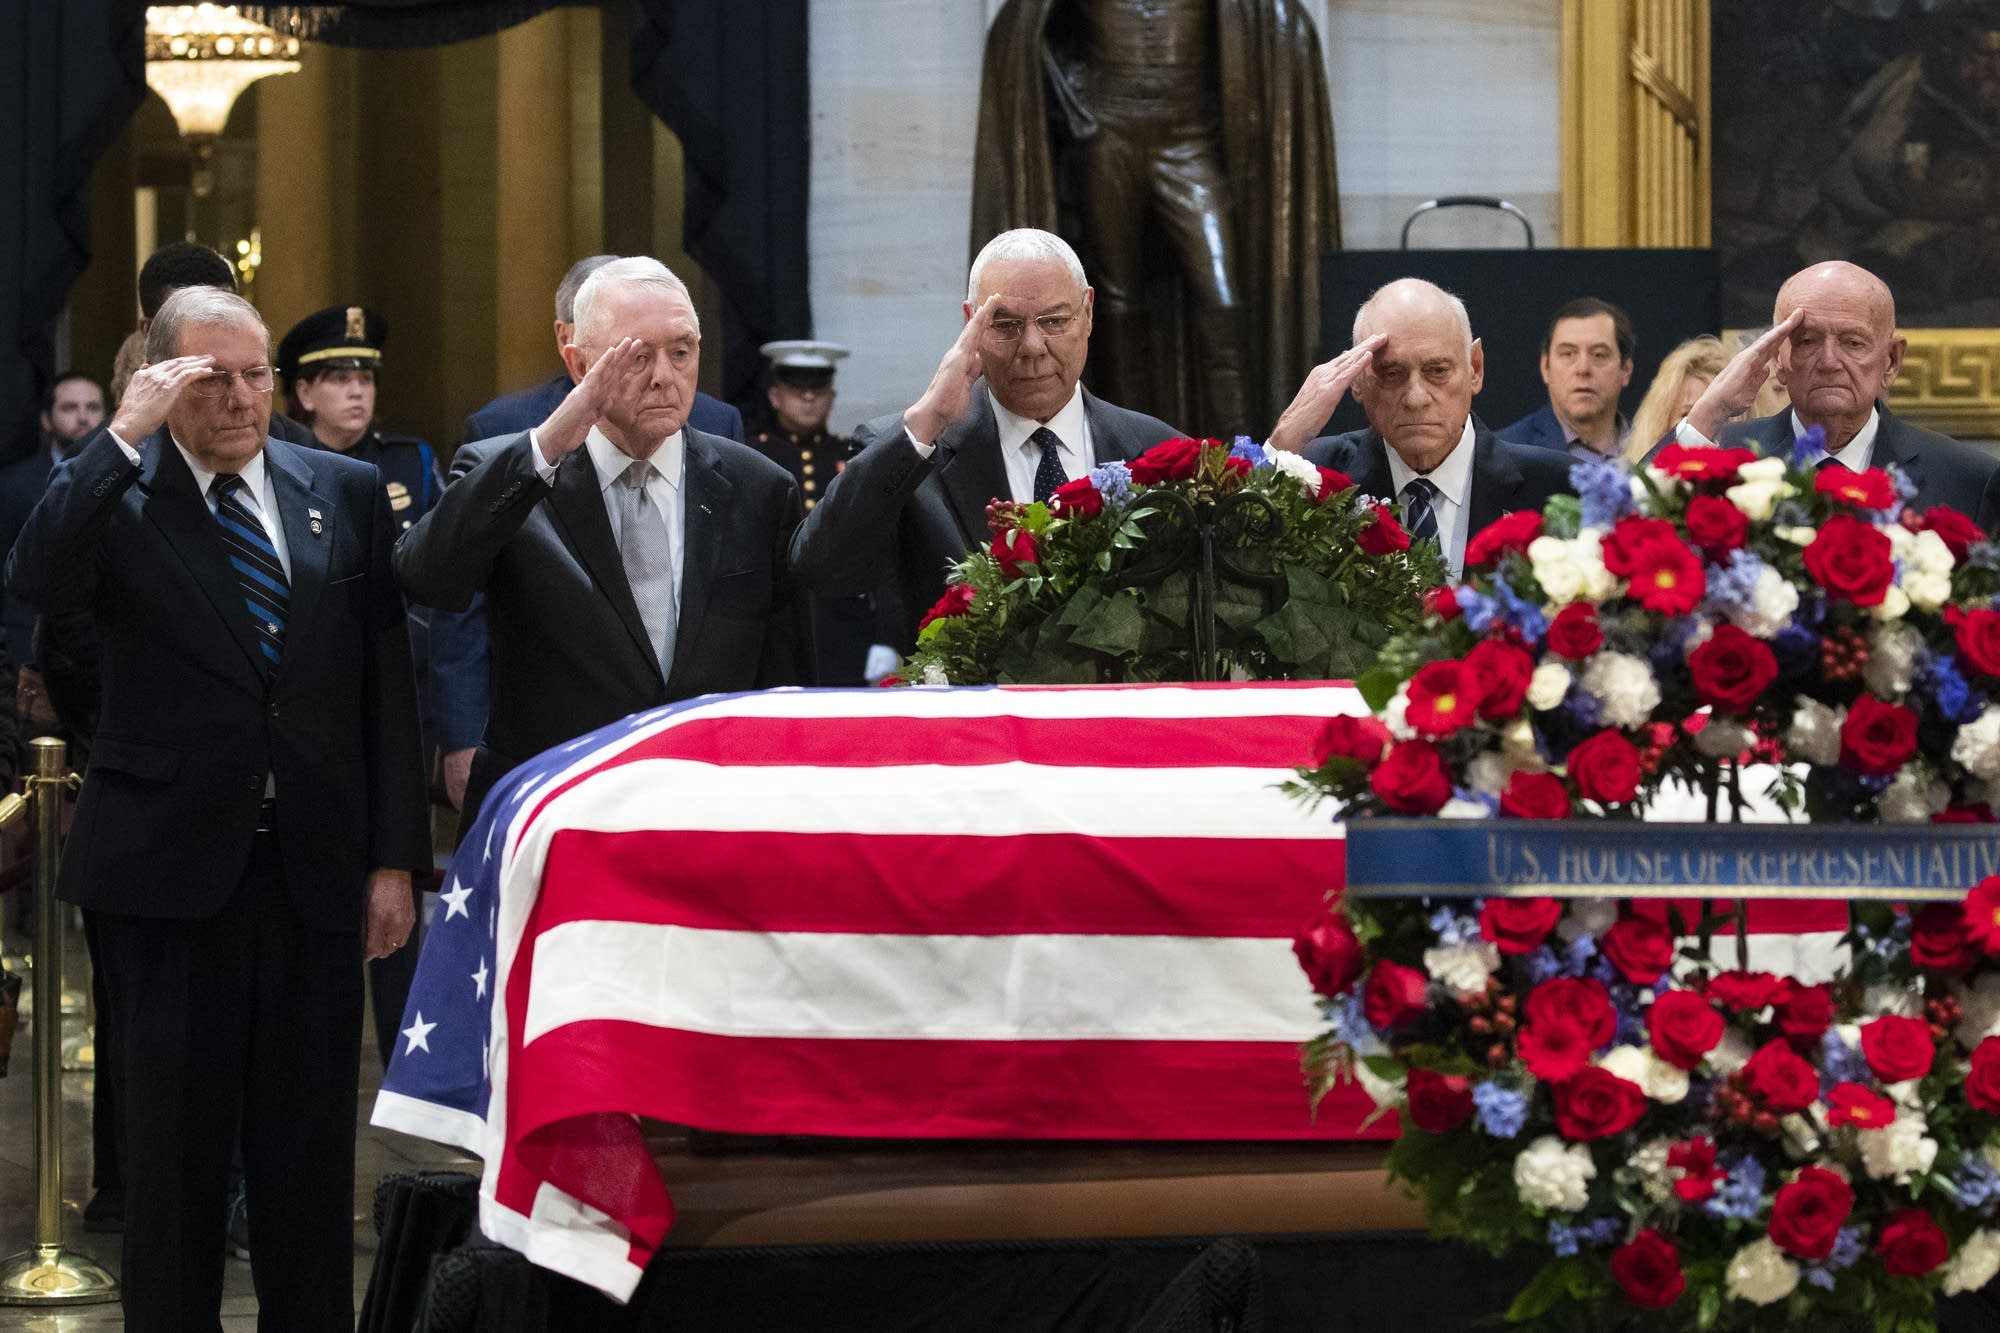 Colin Powell and former military officials salute former President Bush.